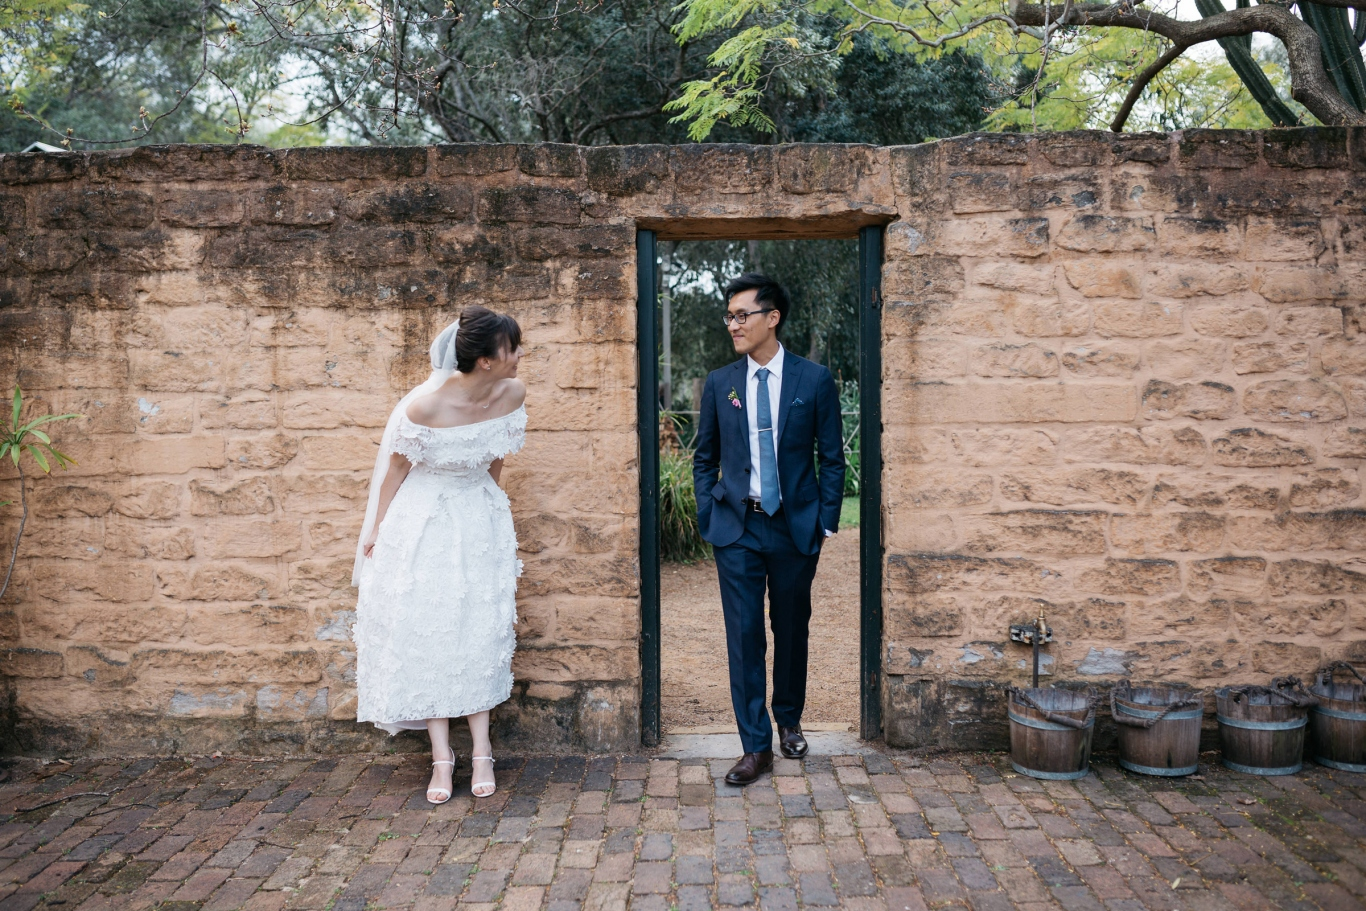 Woman and man in wedding outfits in sandstone courtyard.